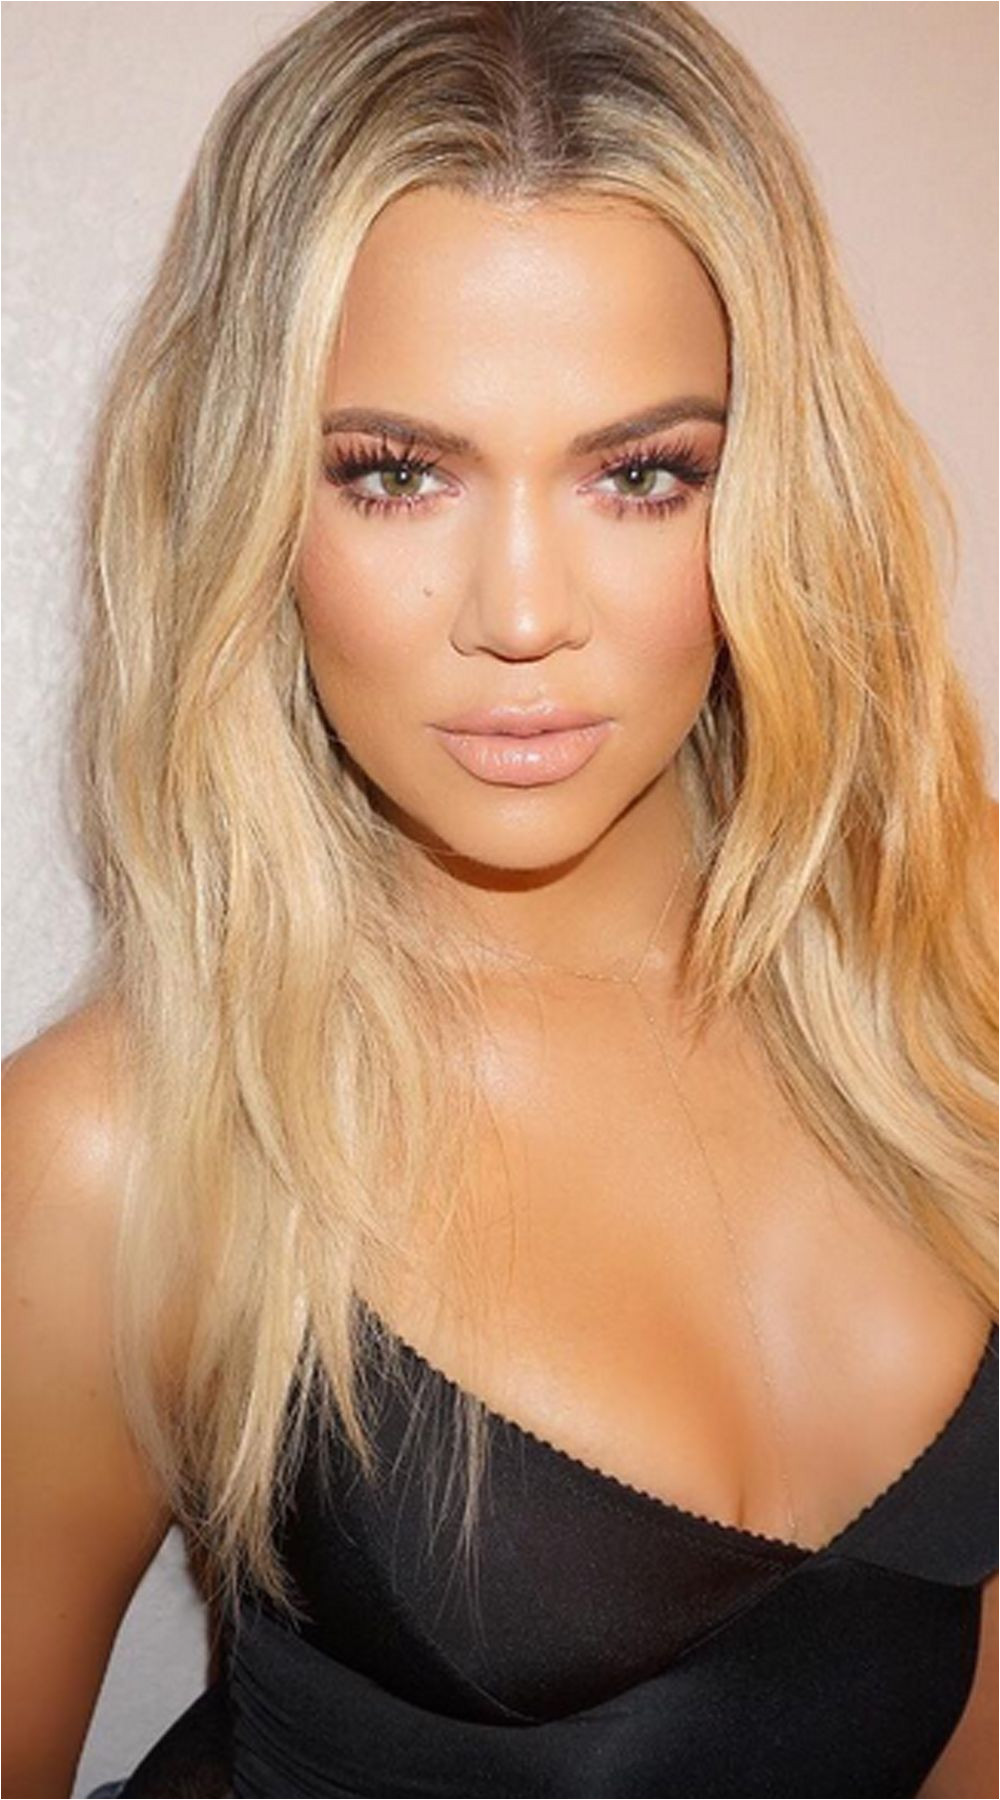 You won t believe what Khloe Kardashian wipes her hair with to keep it silky